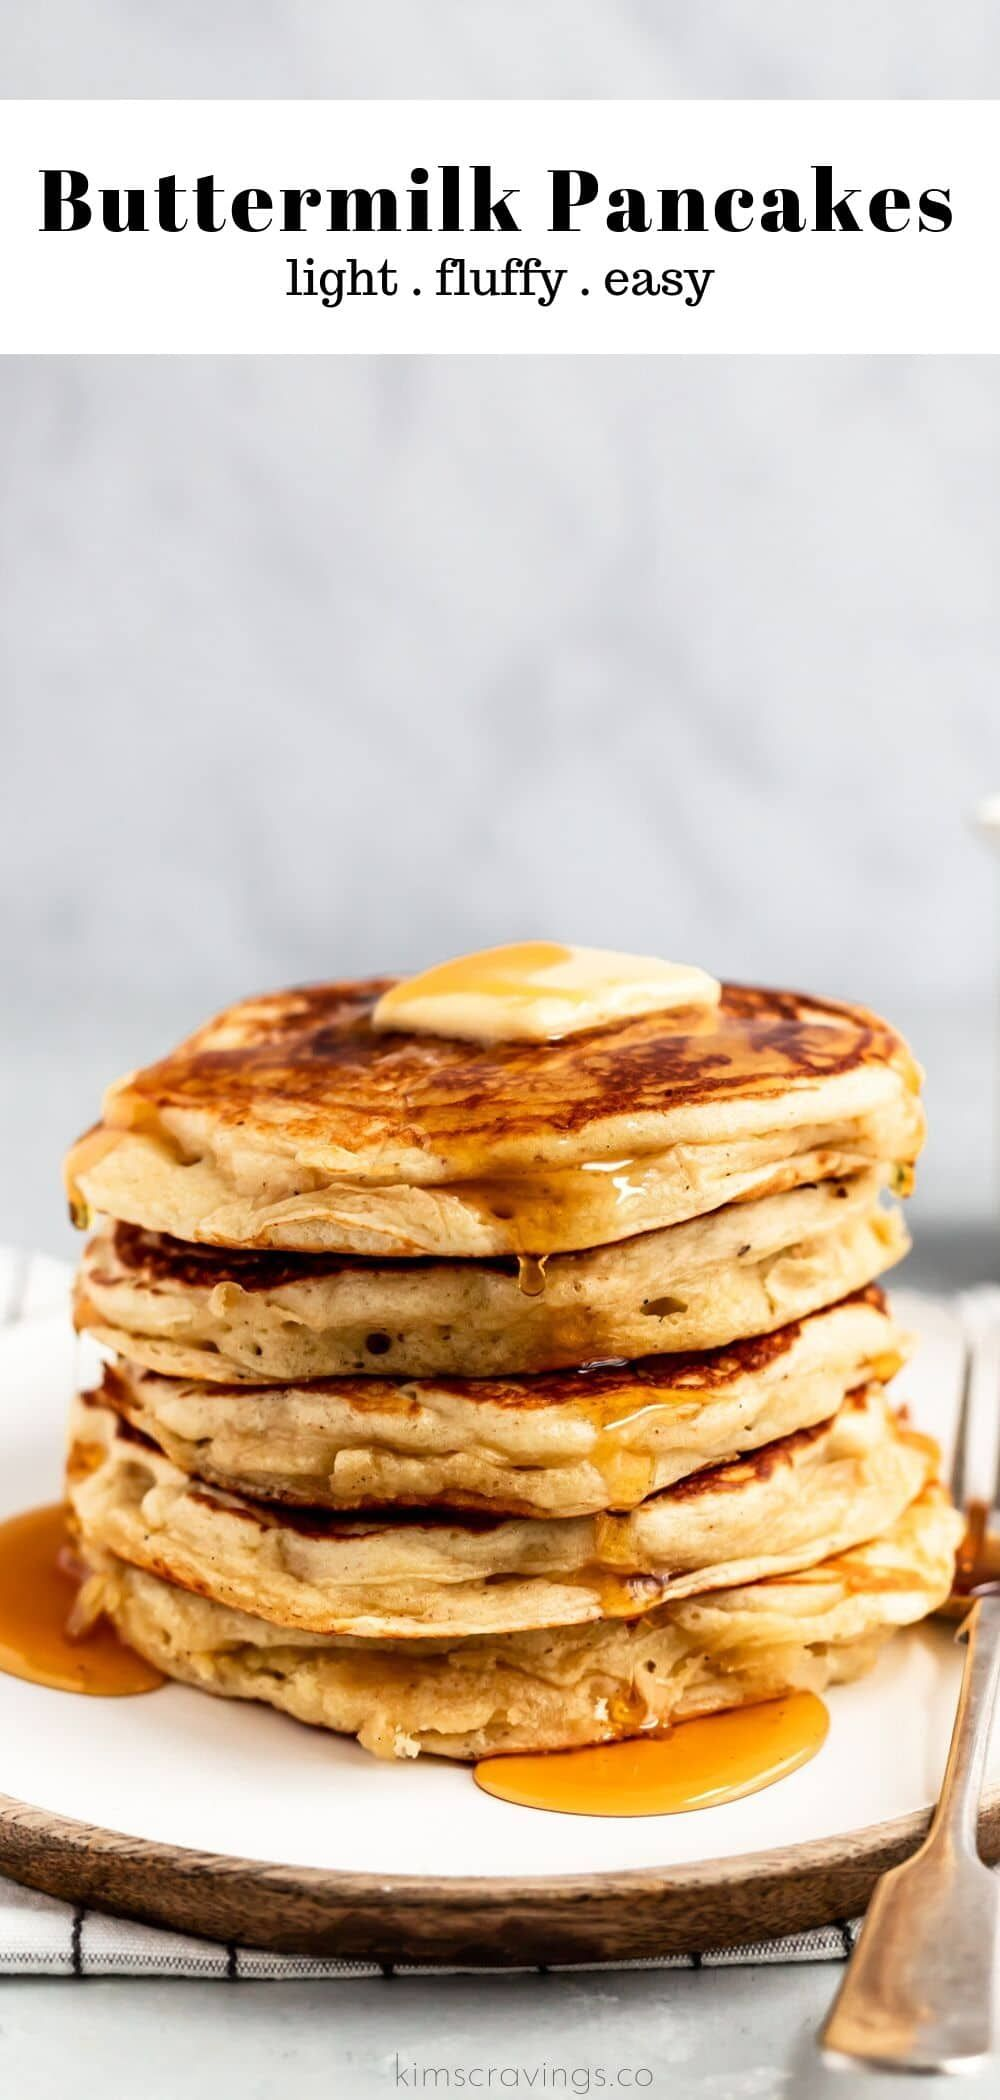 Buttermilk Pancakes That Are Easy And Absolutely Scrumptious Recipe Buttermilk Pancakes Delicious Breakfast Recipes Buttermilk Recipes